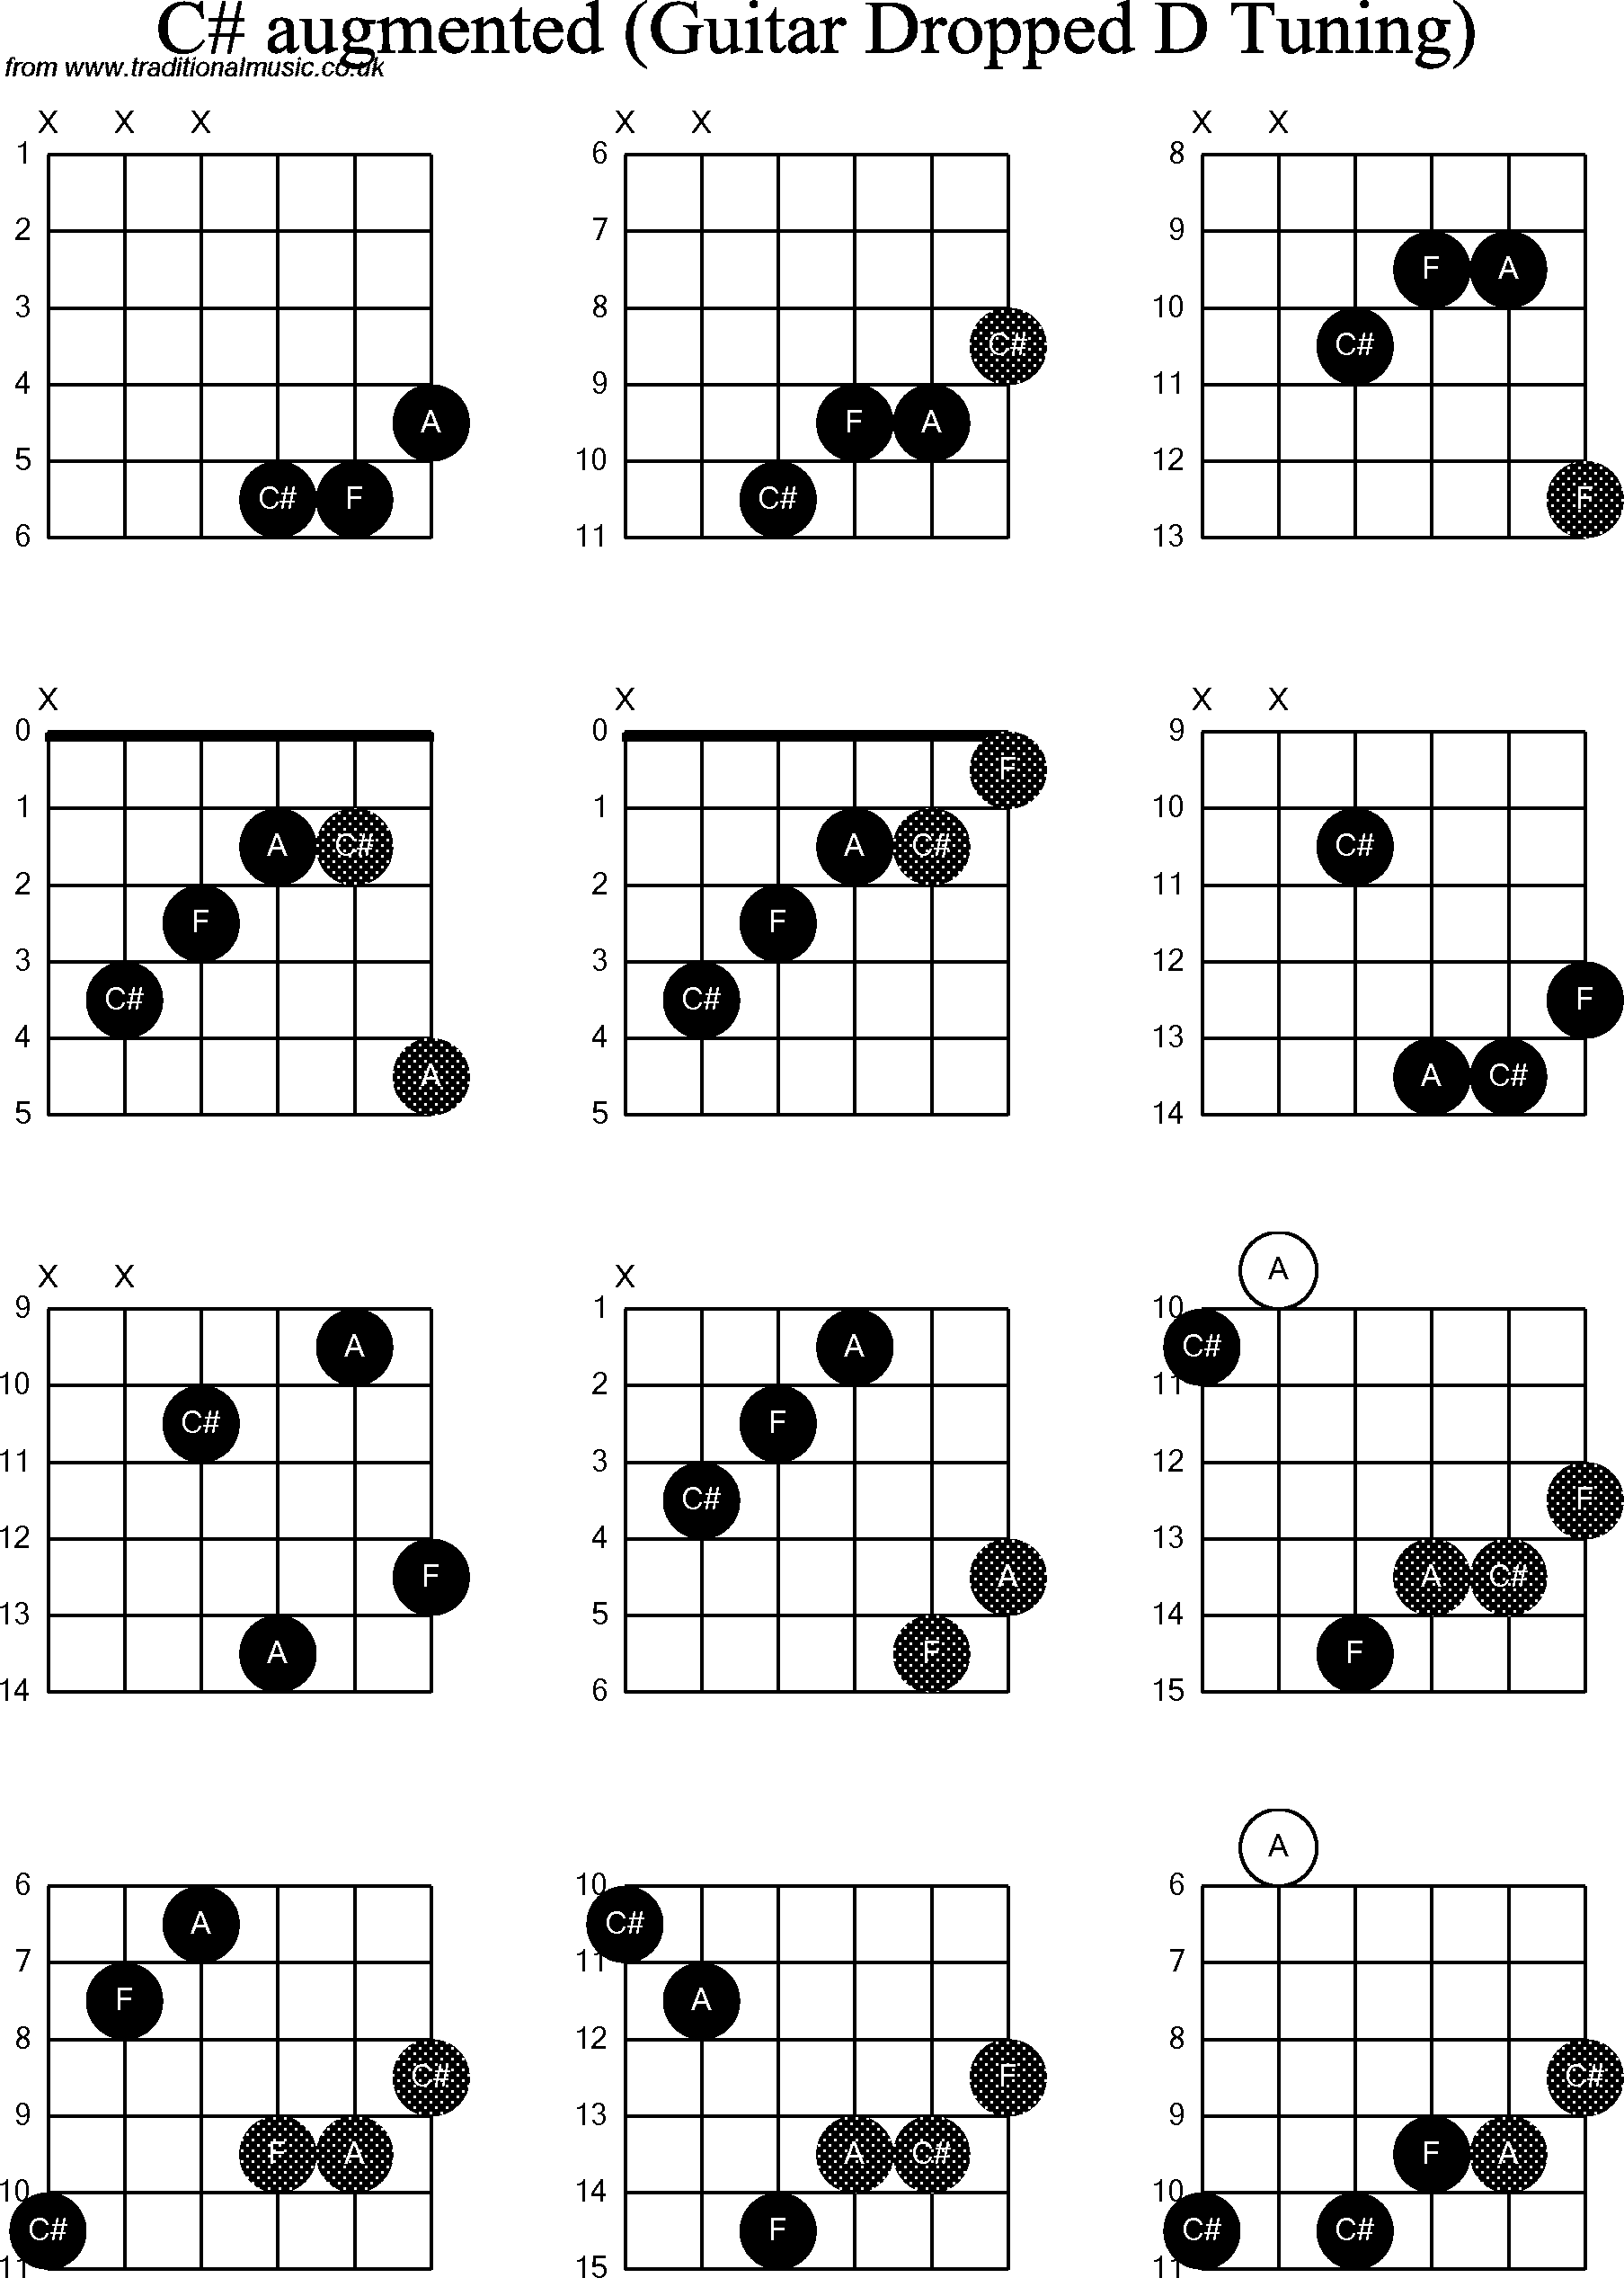 Chord Diagrams For Dropped D Guitardadgbe C Sharp Augmented